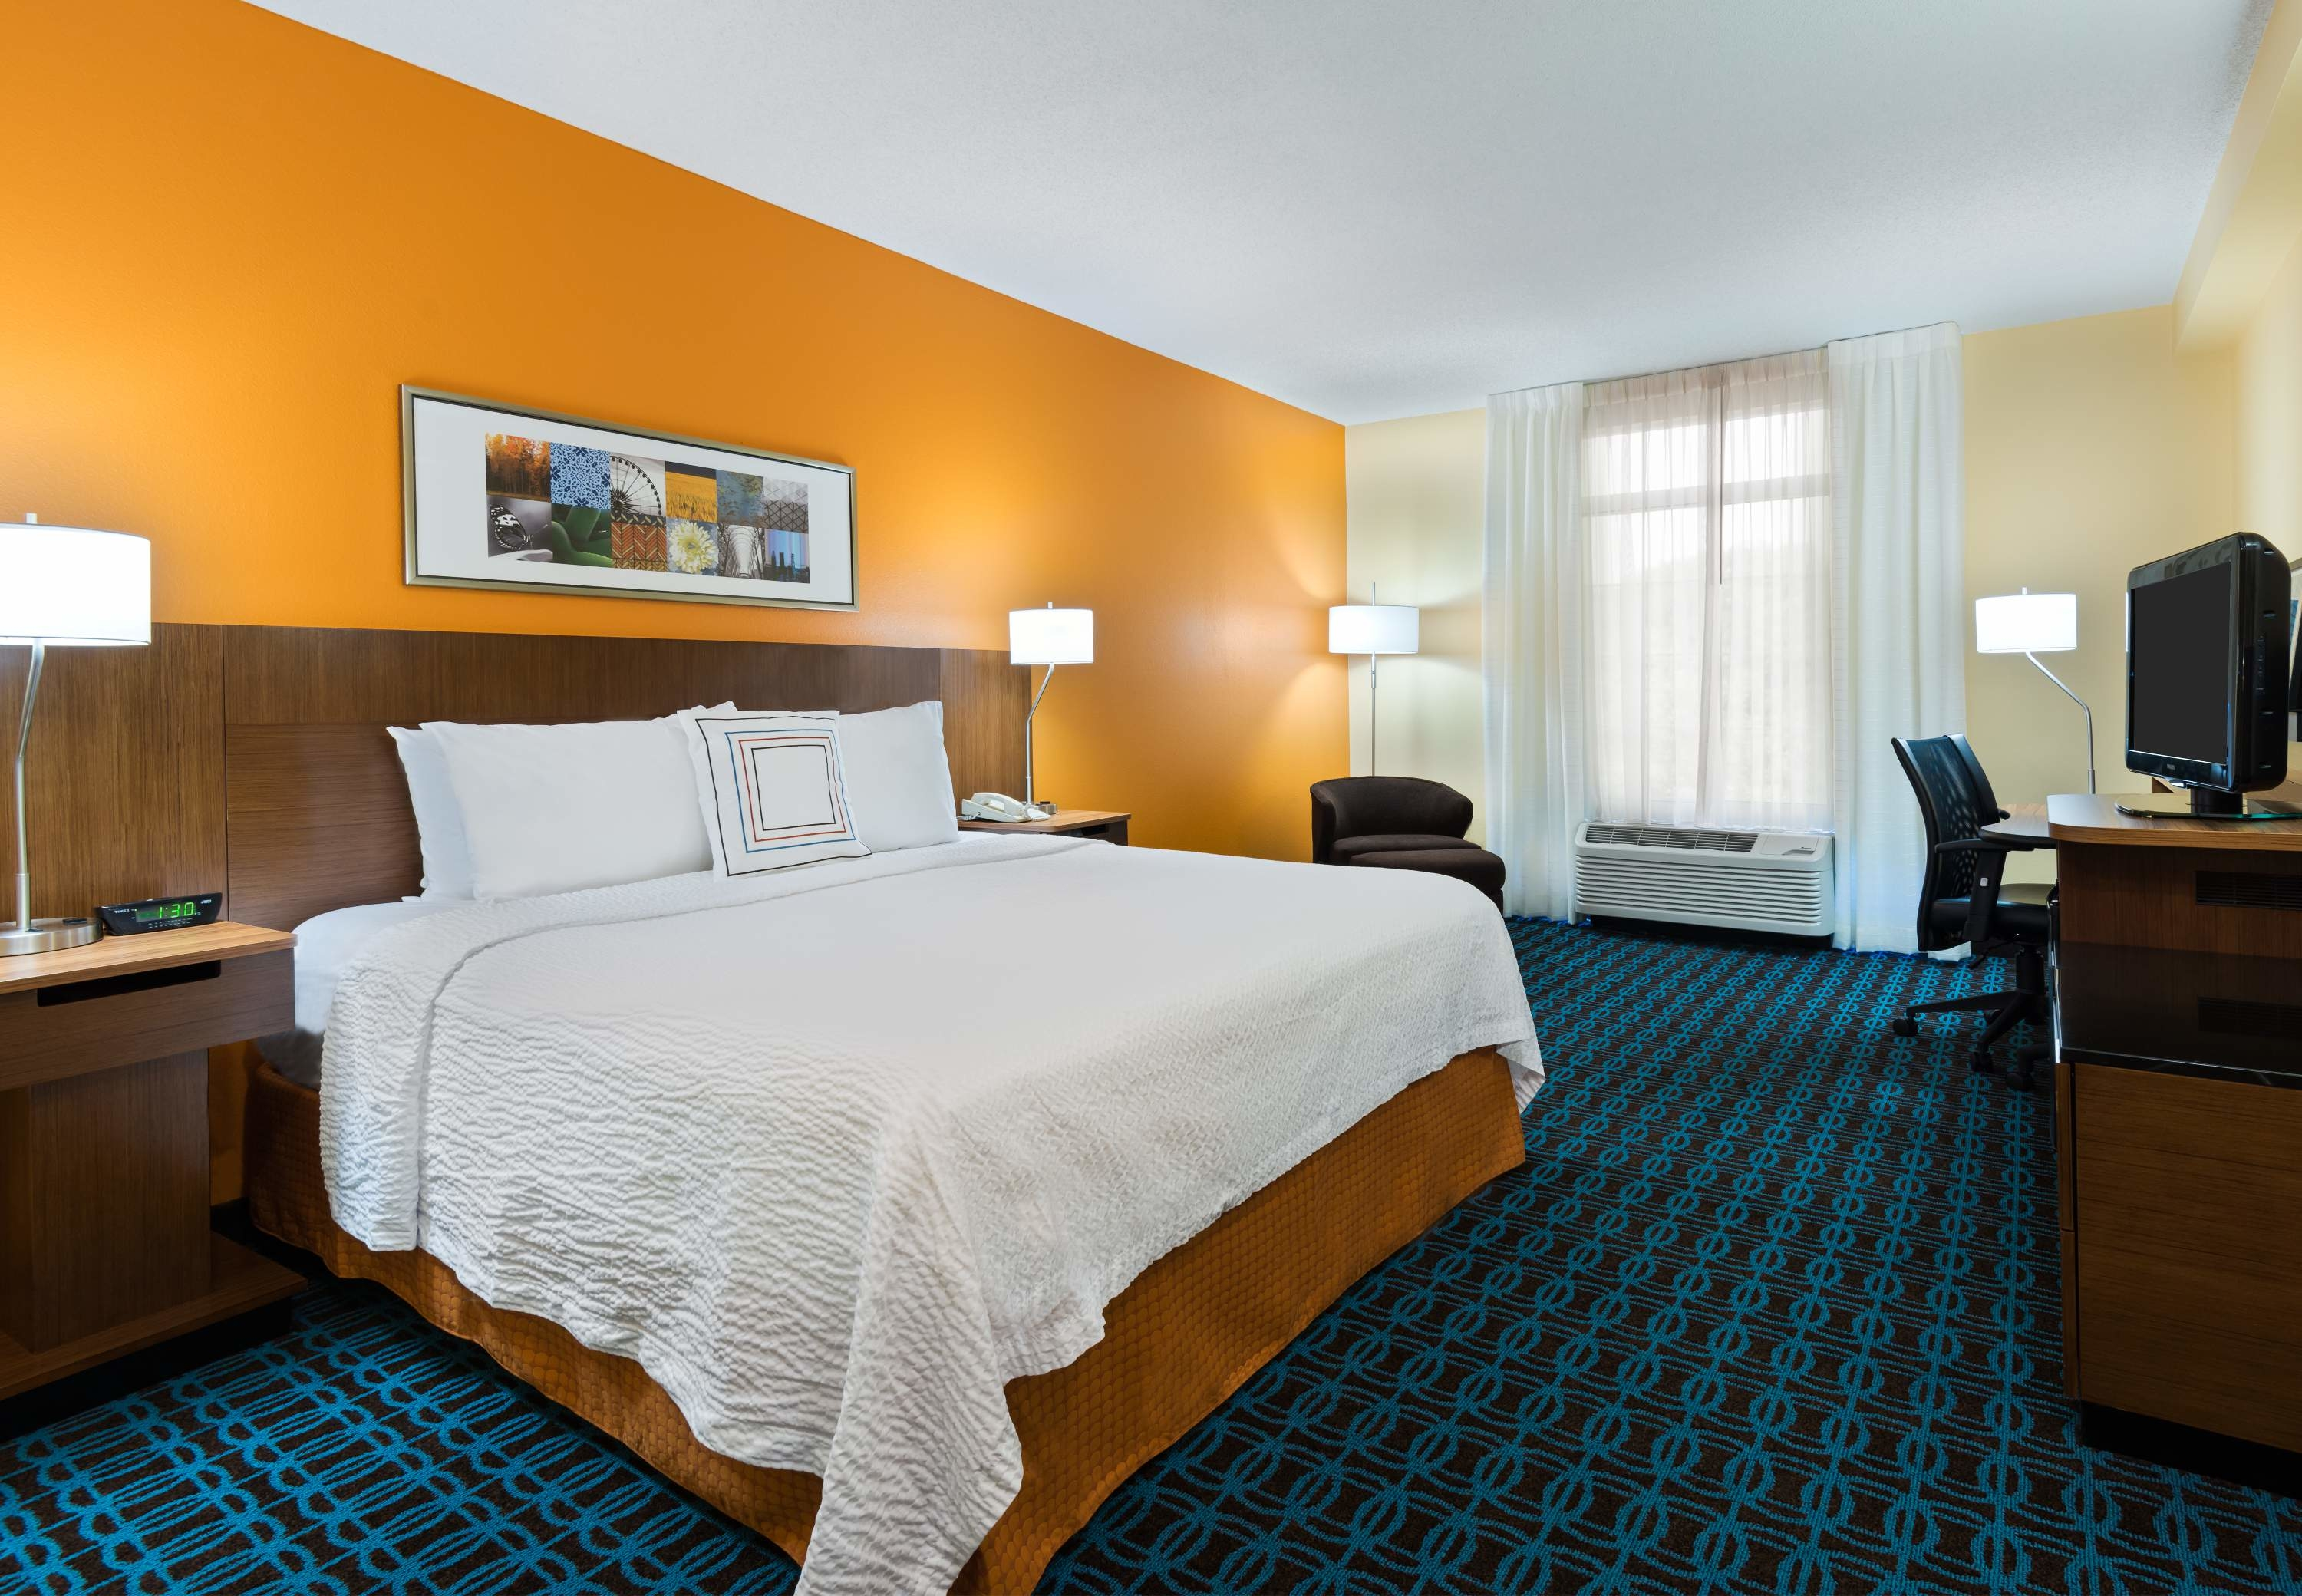 Fairfield Inn & Suites by Marriott Clearwater image 2